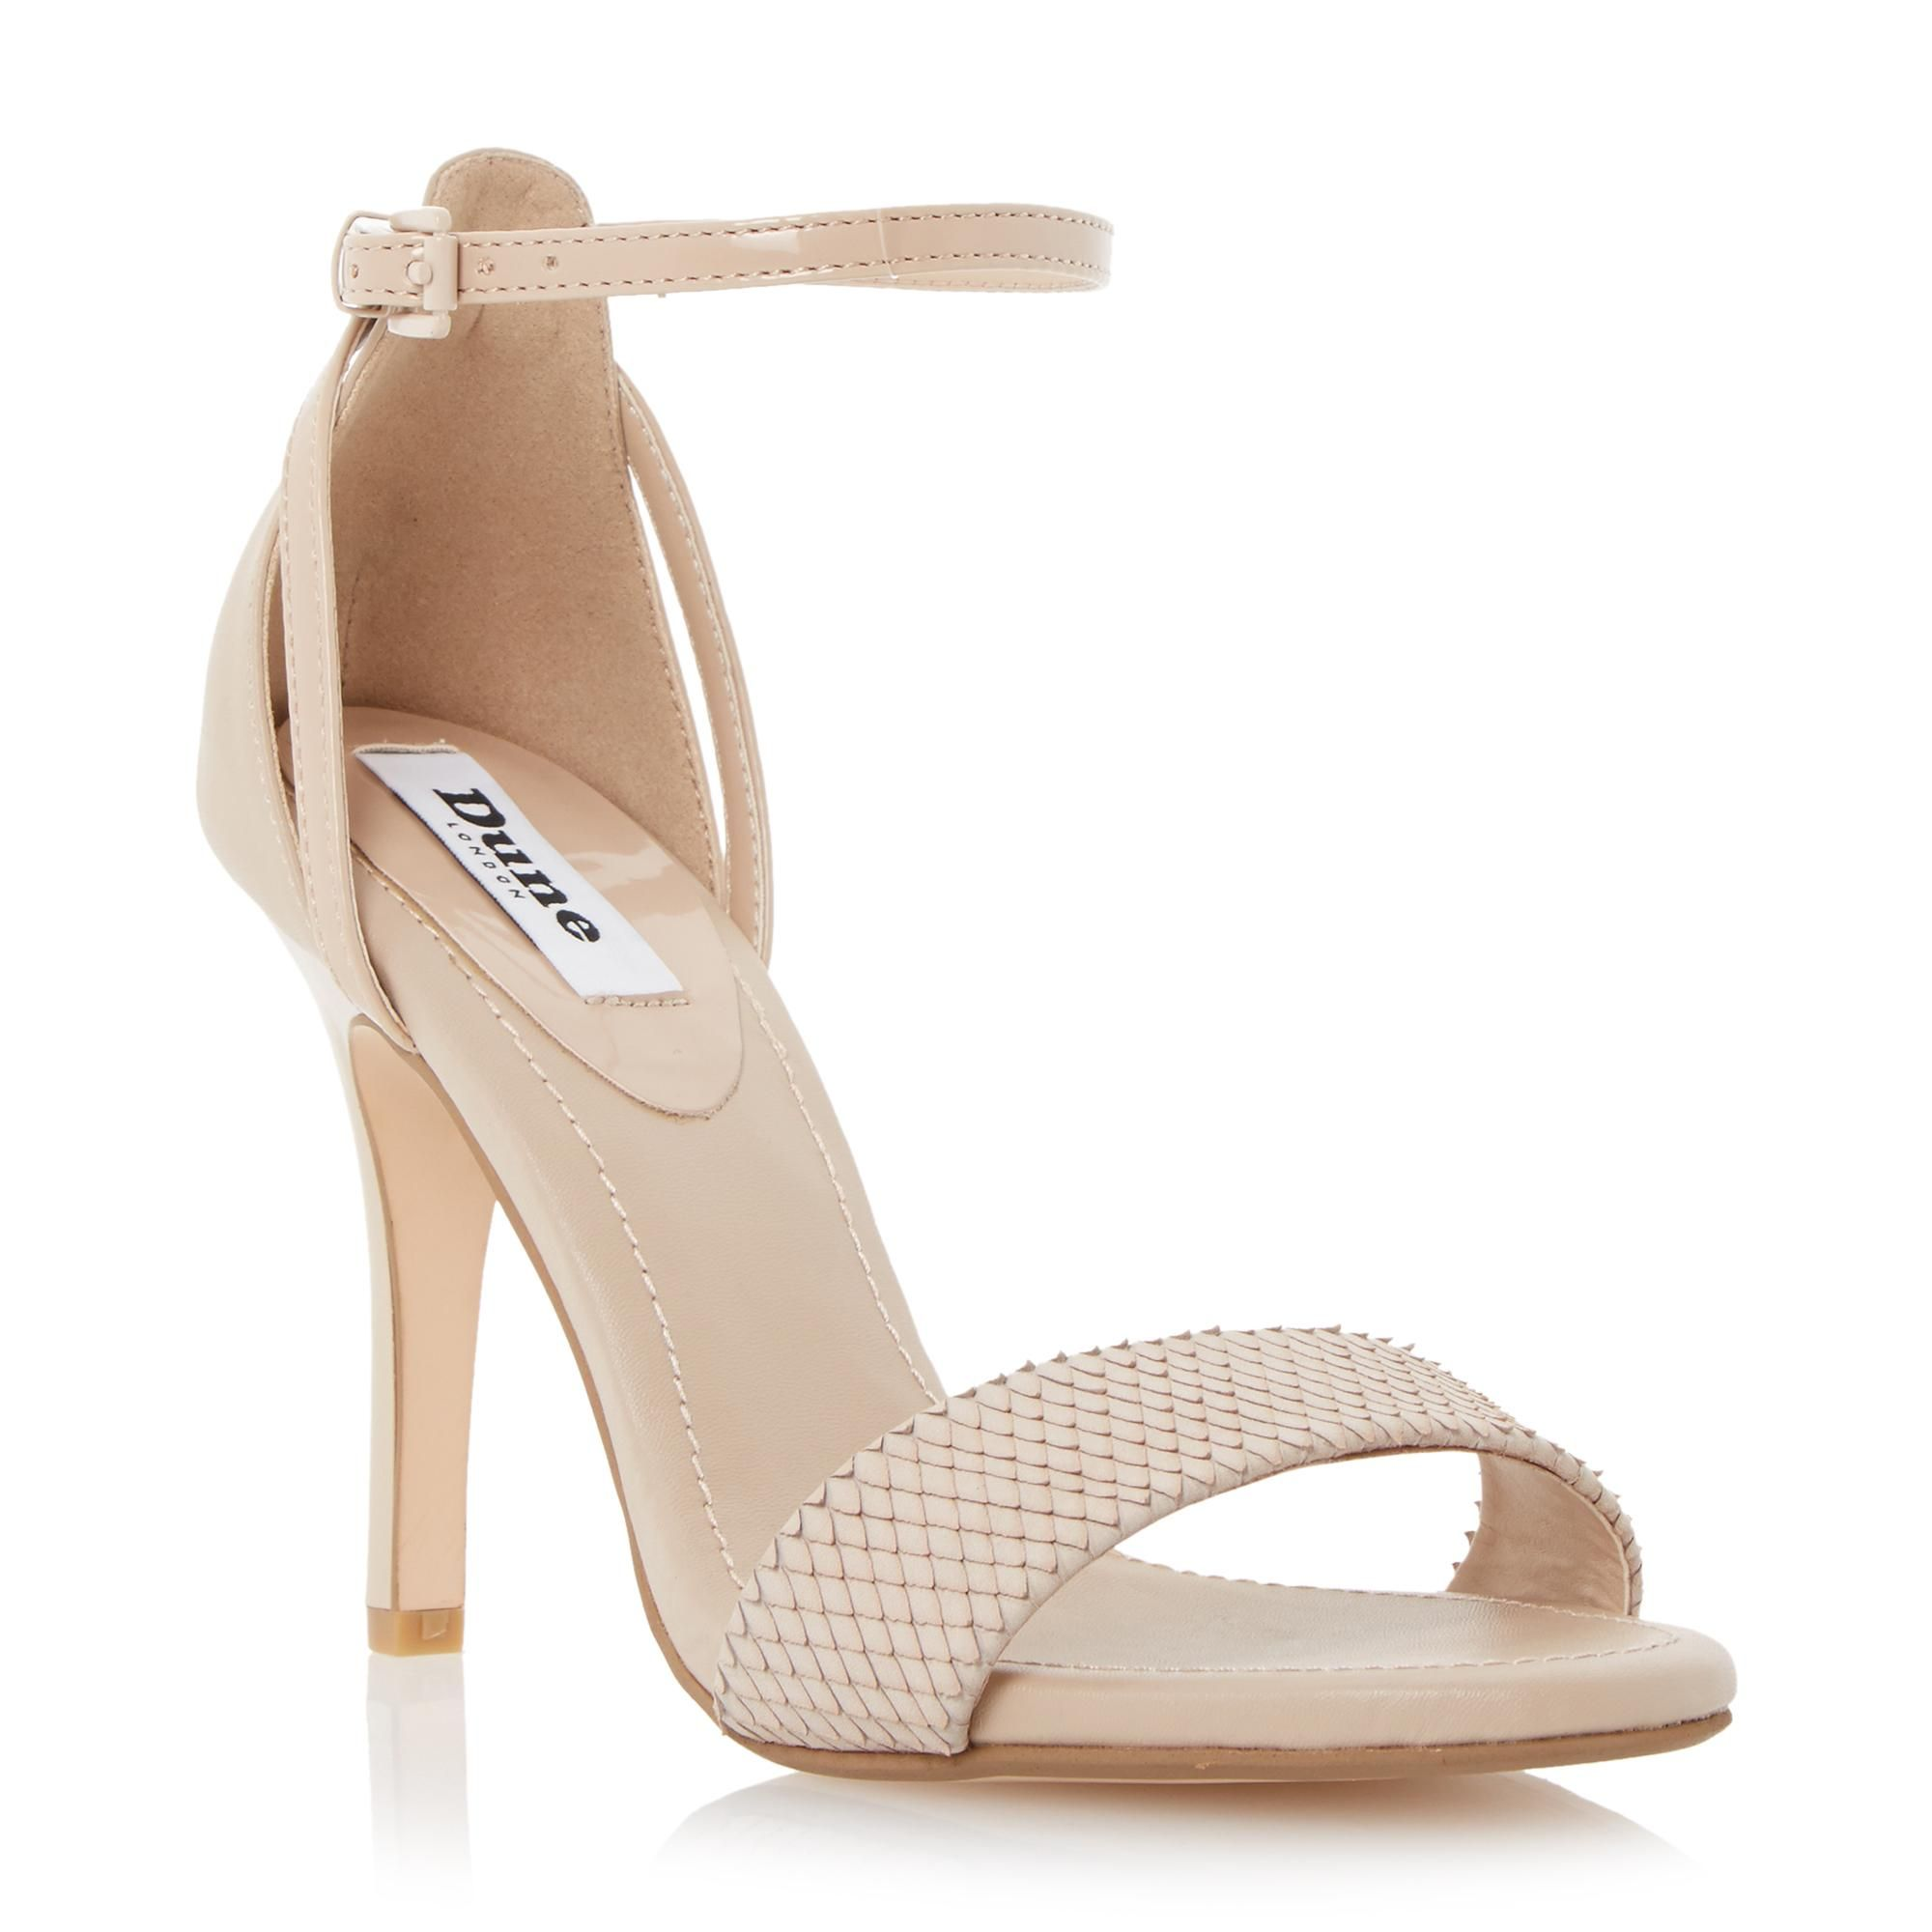 DUNE LADIES MADEIRA - Two Part High Heel Sandal - nude | Dune Shoes Online